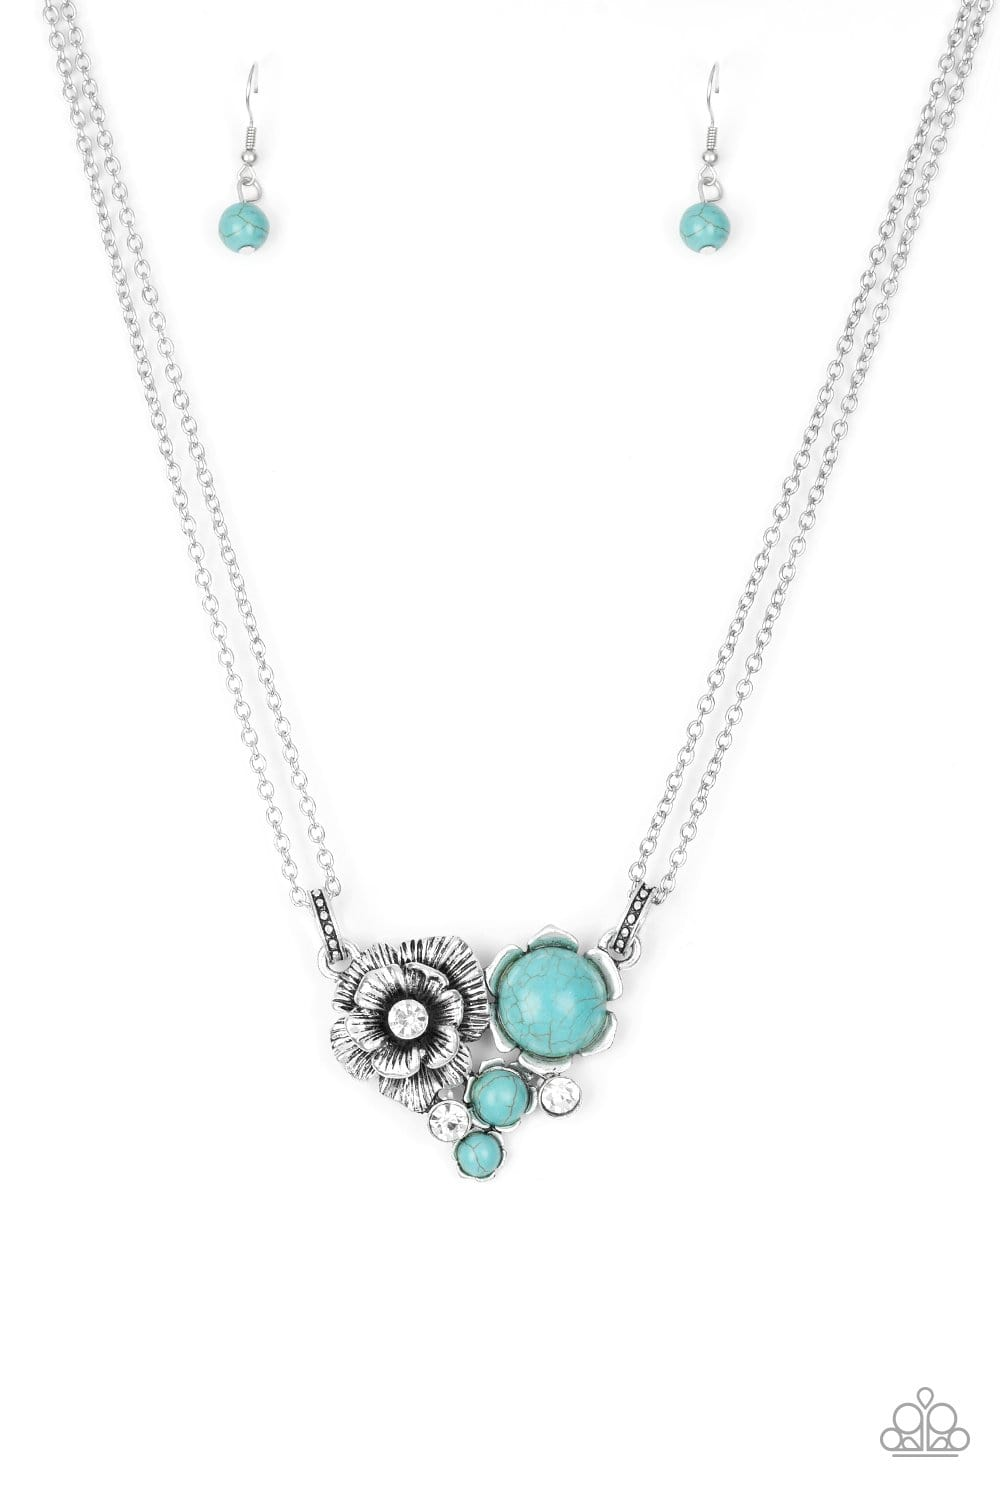 Desert Harvest - Turquoise - Jewels N' Thingz Boutique